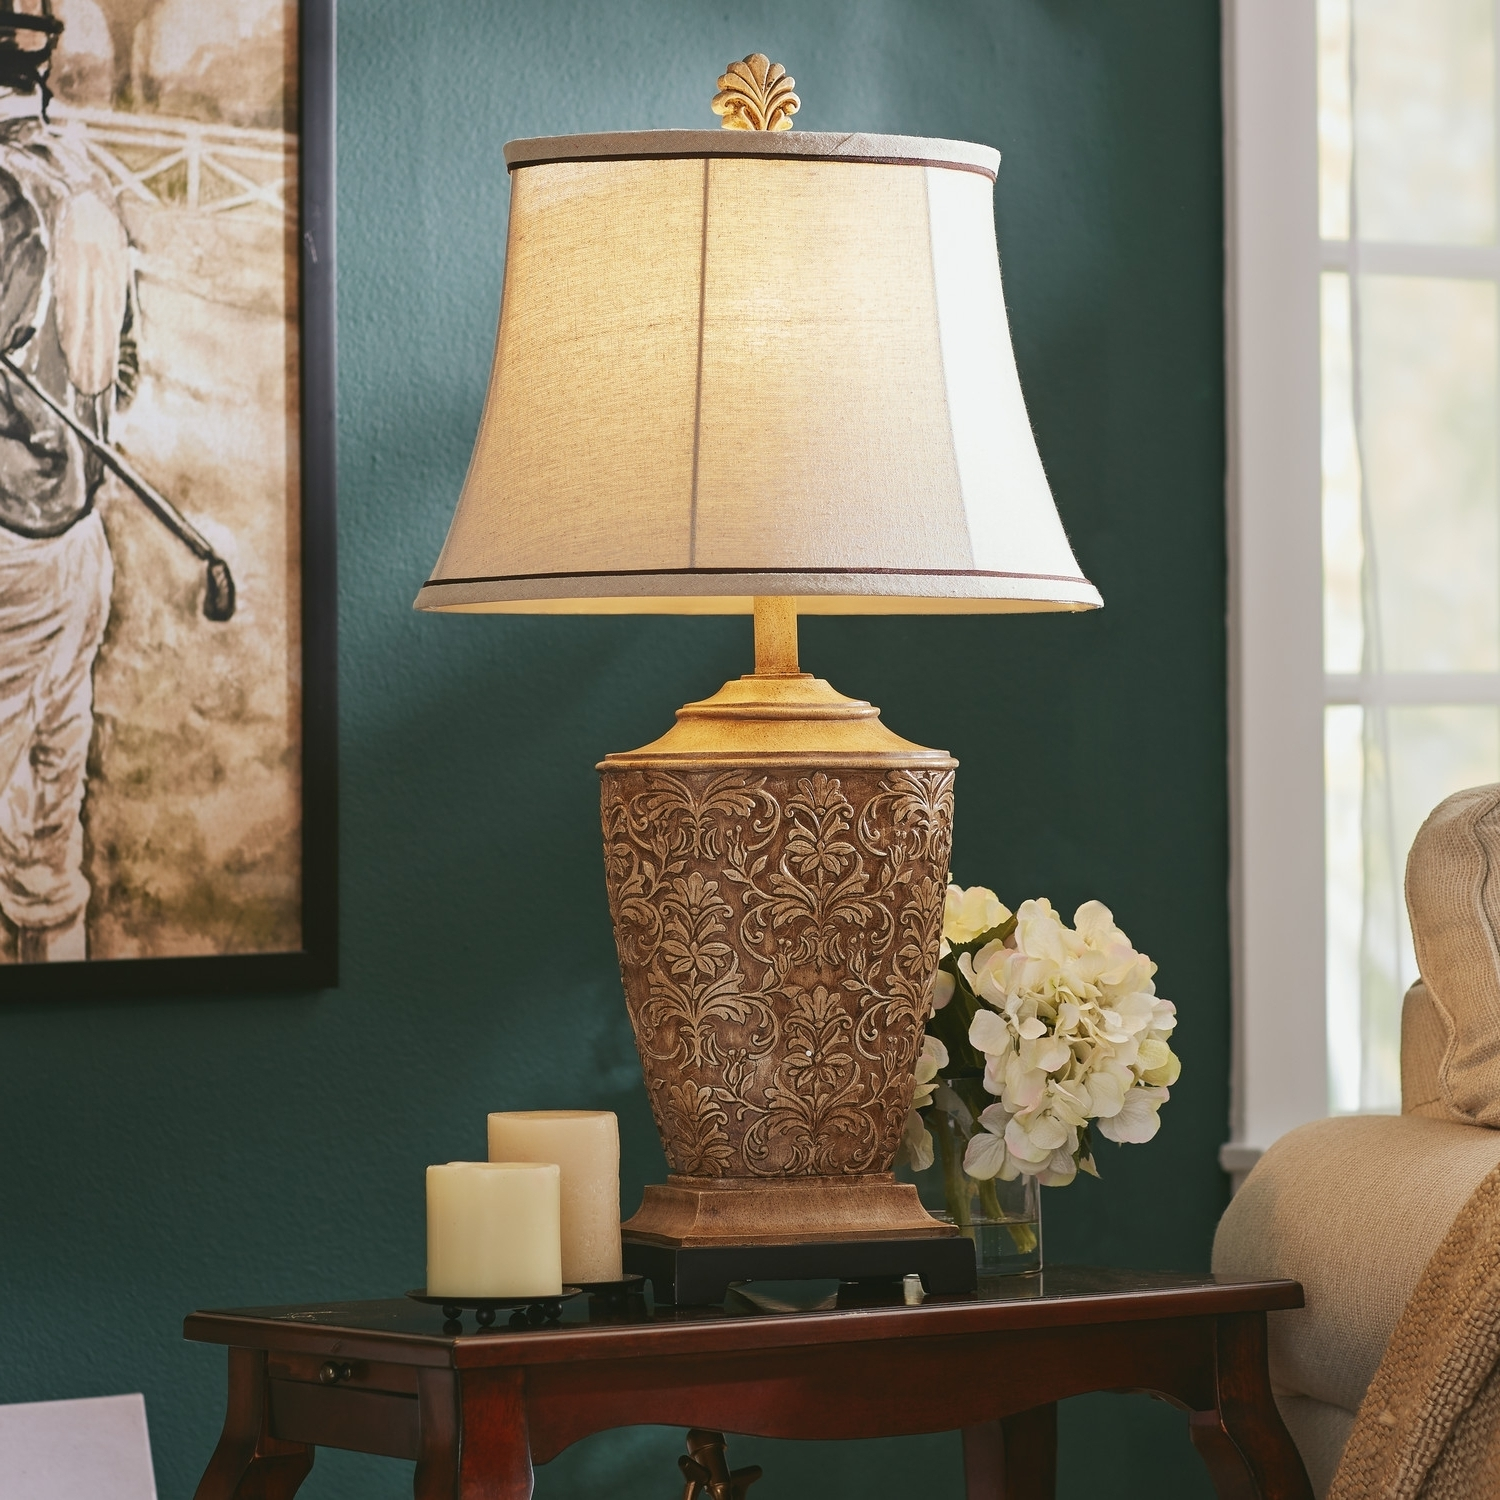 Well Liked Living Room Table Lamps In Table Lamps For Living Room 15 With Table Lamps For Living Room (View 2 of 20)